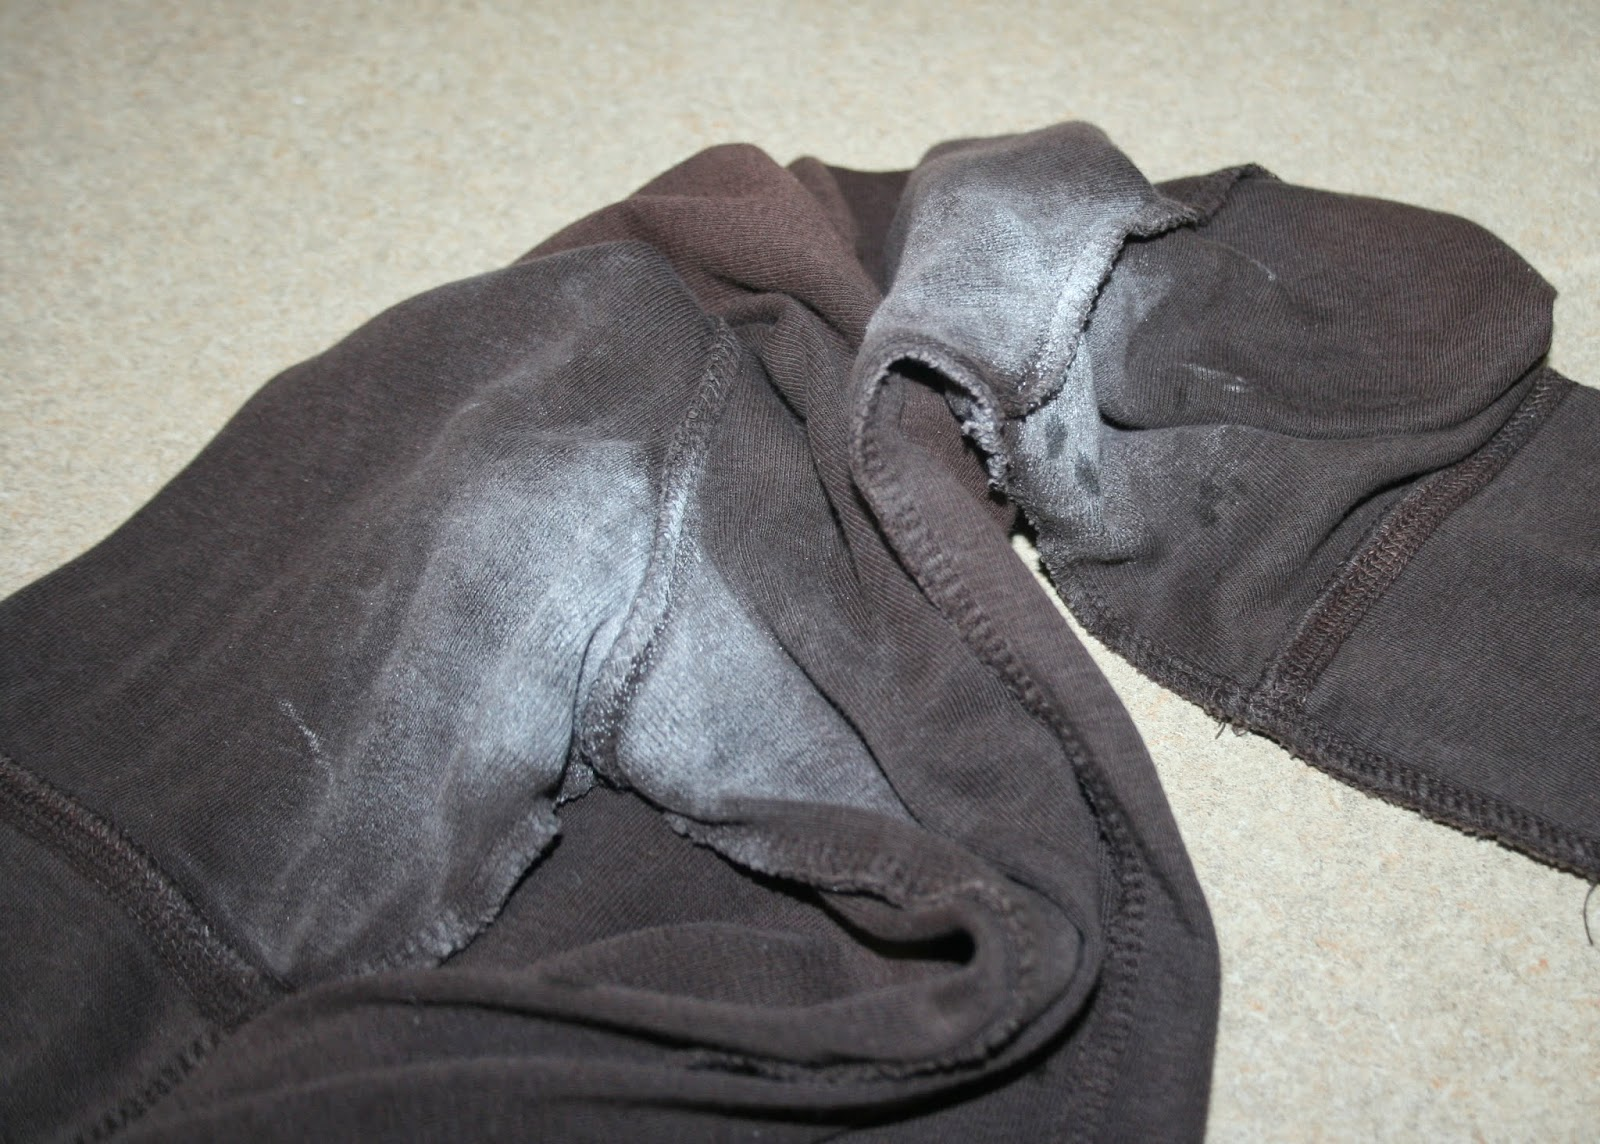 Getting rid of deodorant stains on shirts how to remove for How to remove sweat stains from black shirts